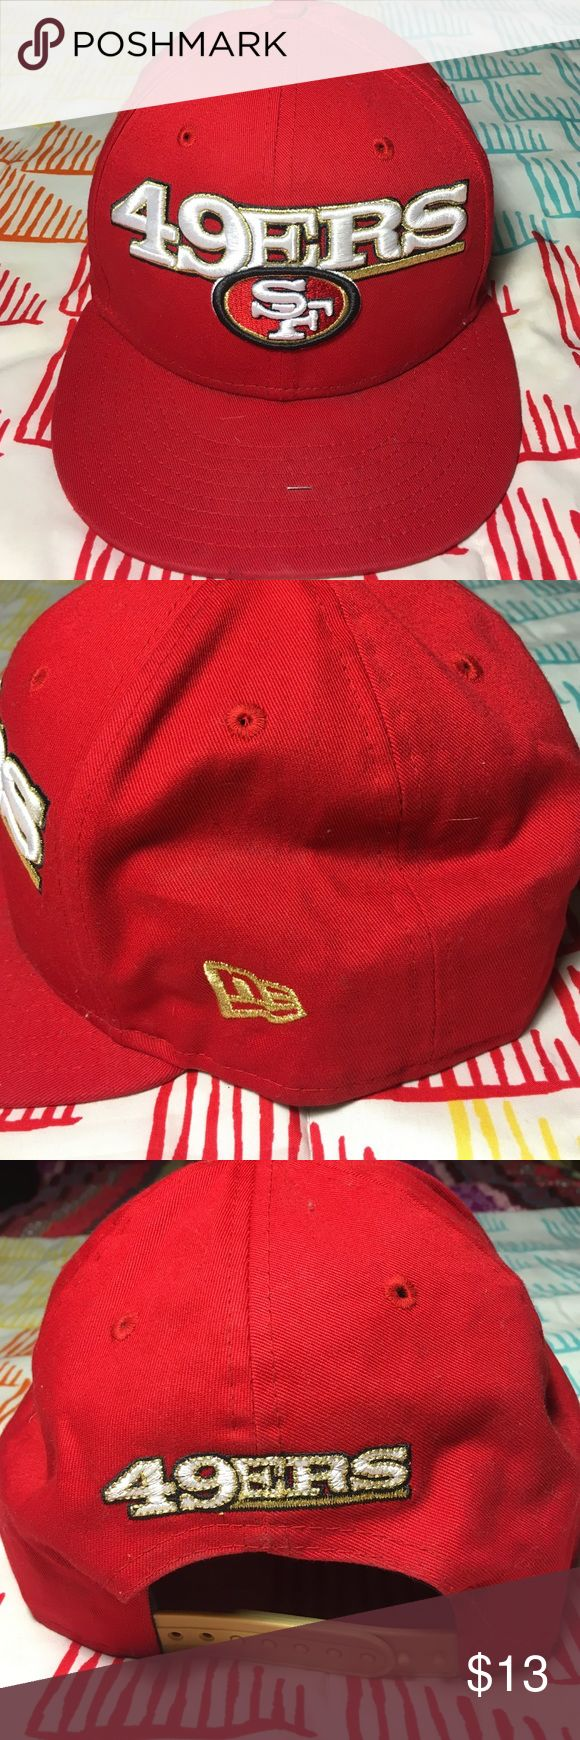 San Francisco 49ers NFL Football SnapBack Hat Size One Size - Condition 9.5/10 New Era Accessories Hats